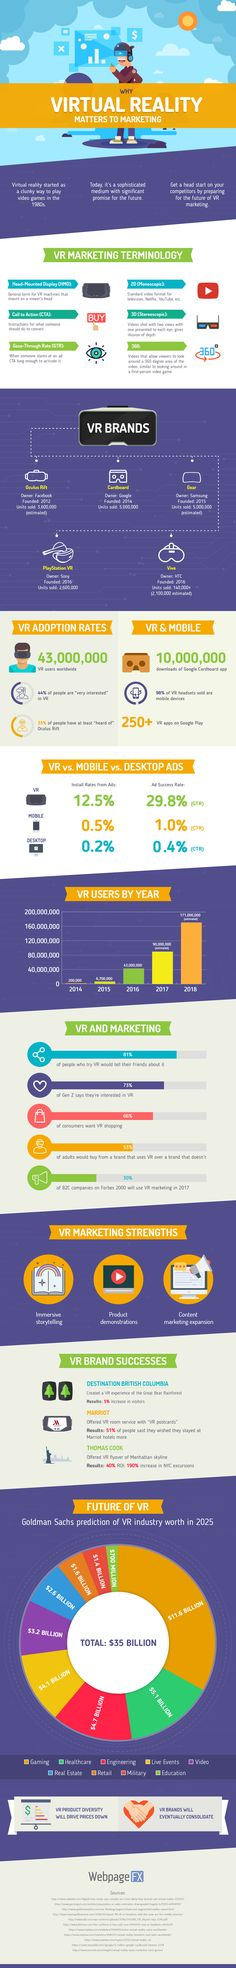 #Infographic | Why #VR Matters to #Marketing | Contact Alejandro Franceschi for VR, AR & Media Projects at: https://tempestdigitalstudios.com